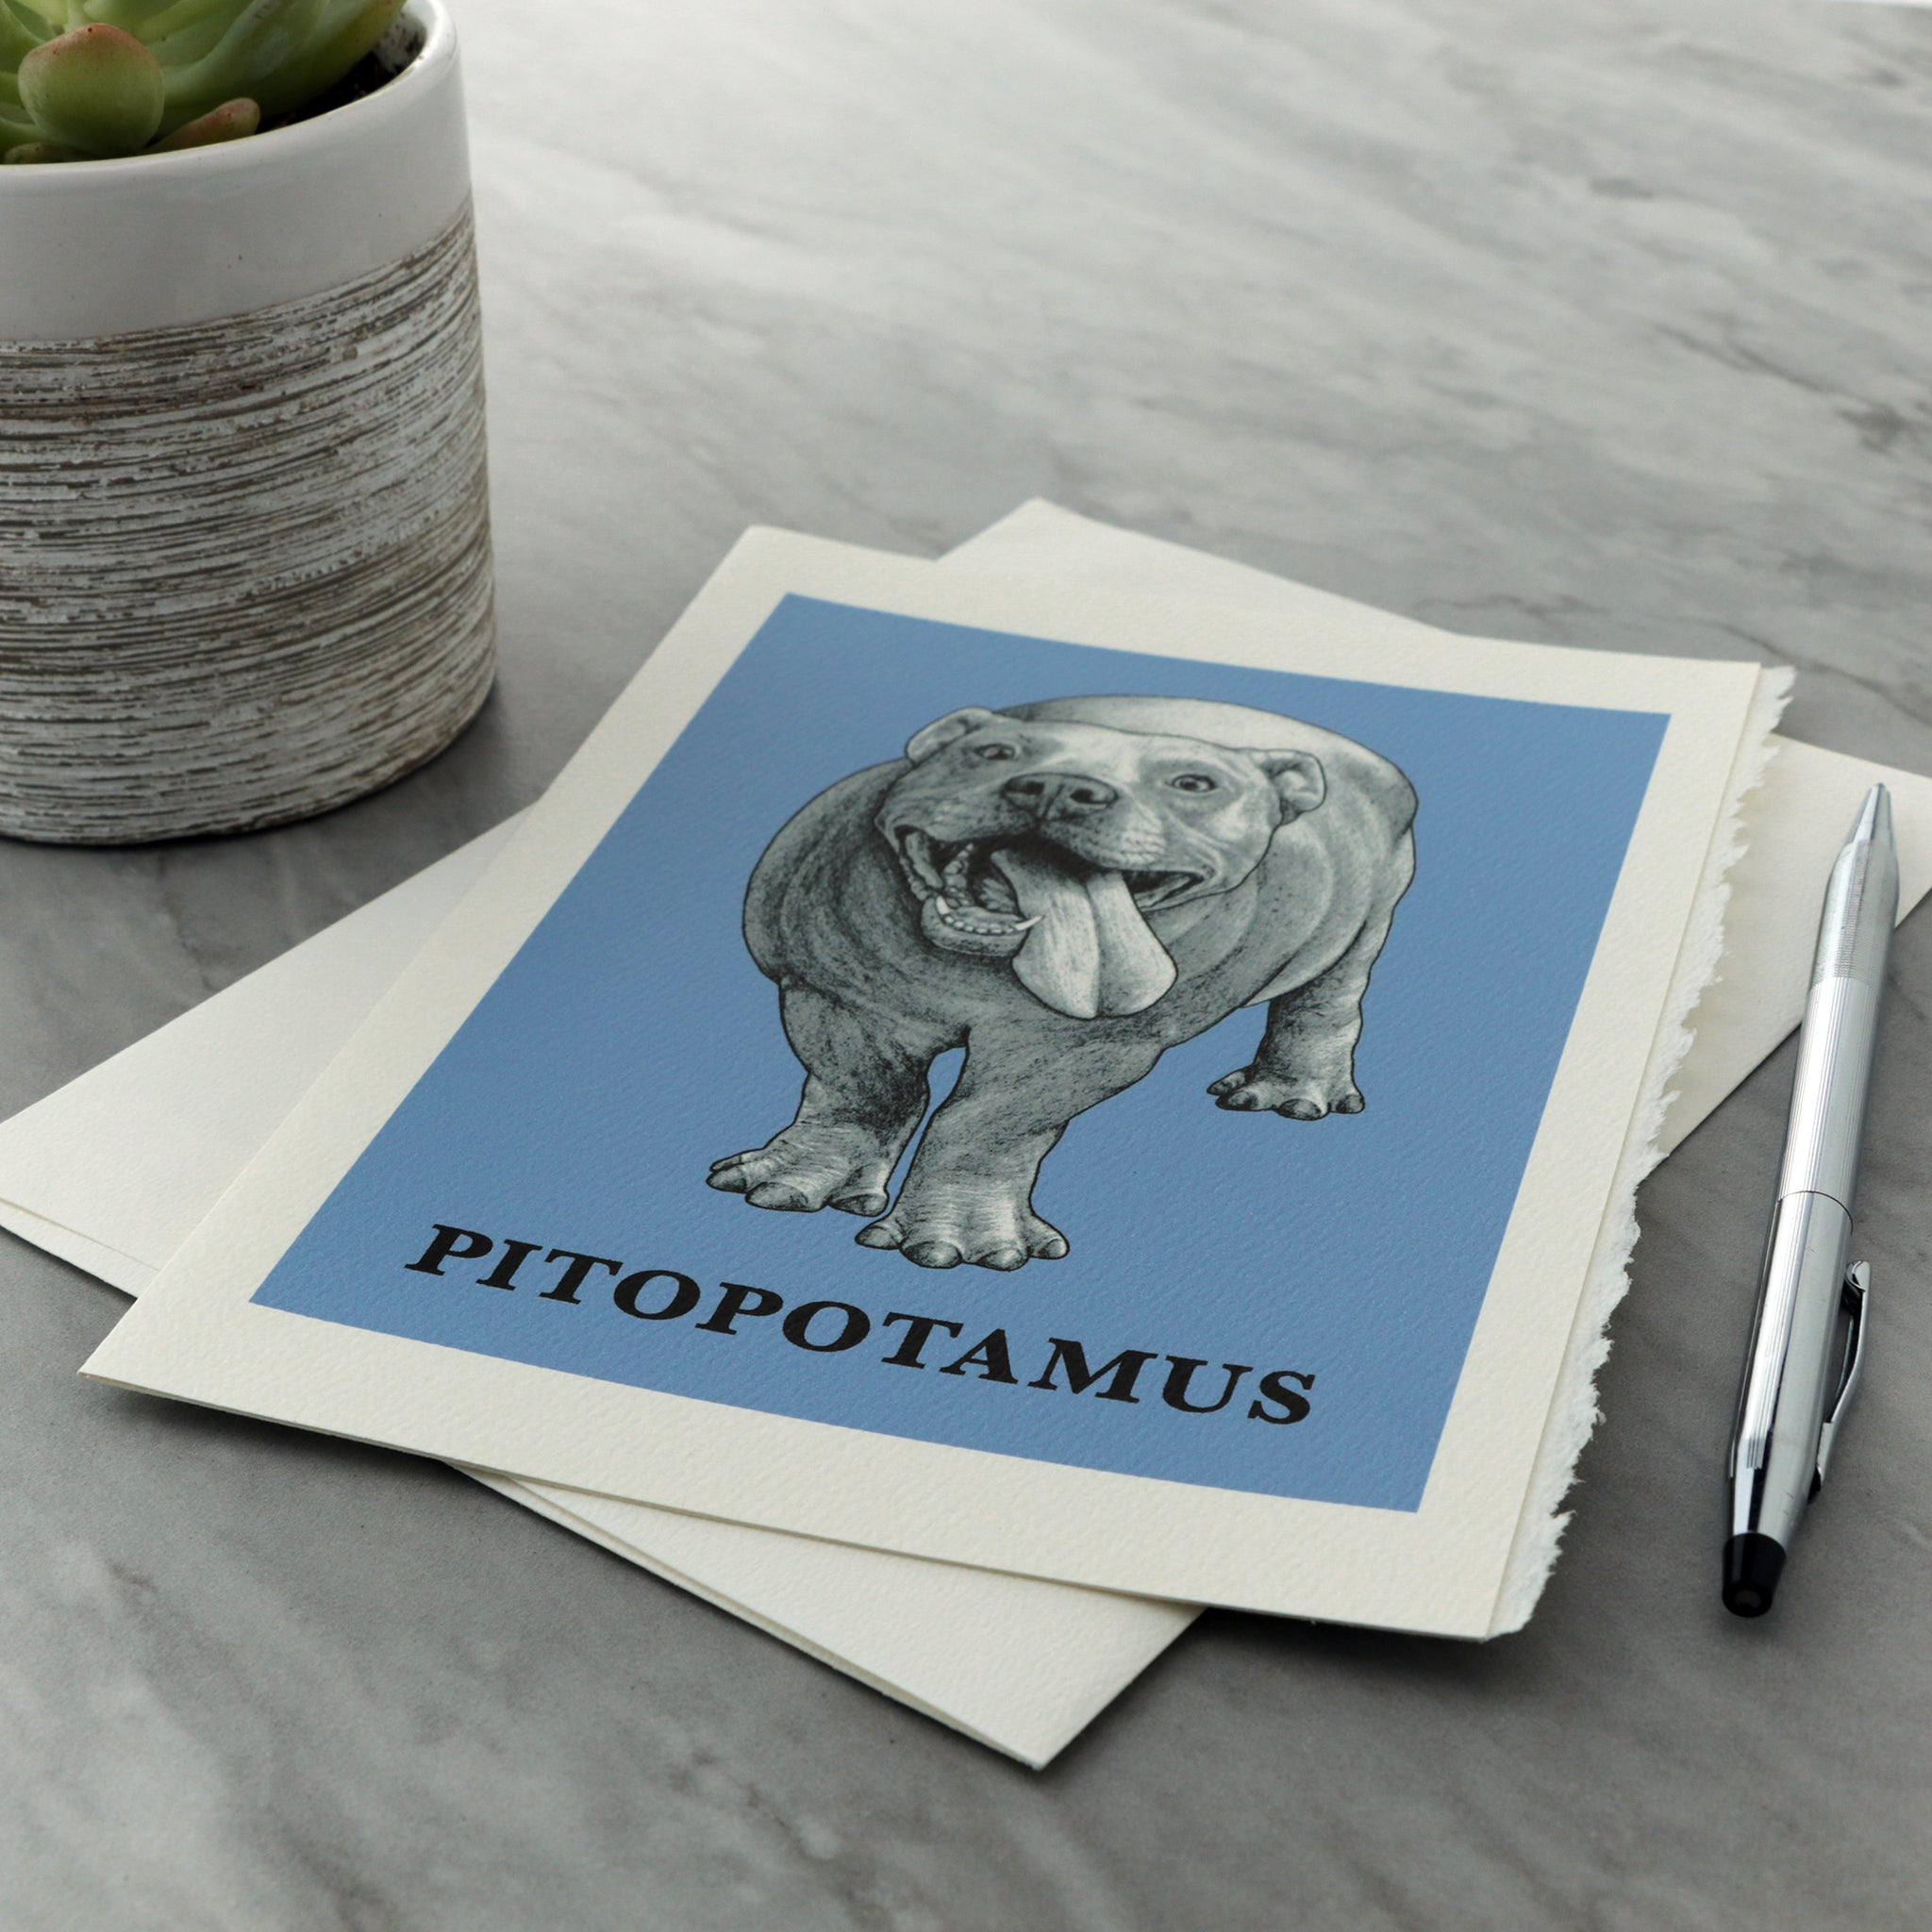 "Pitopotamus 5x7"" Greeting Card"